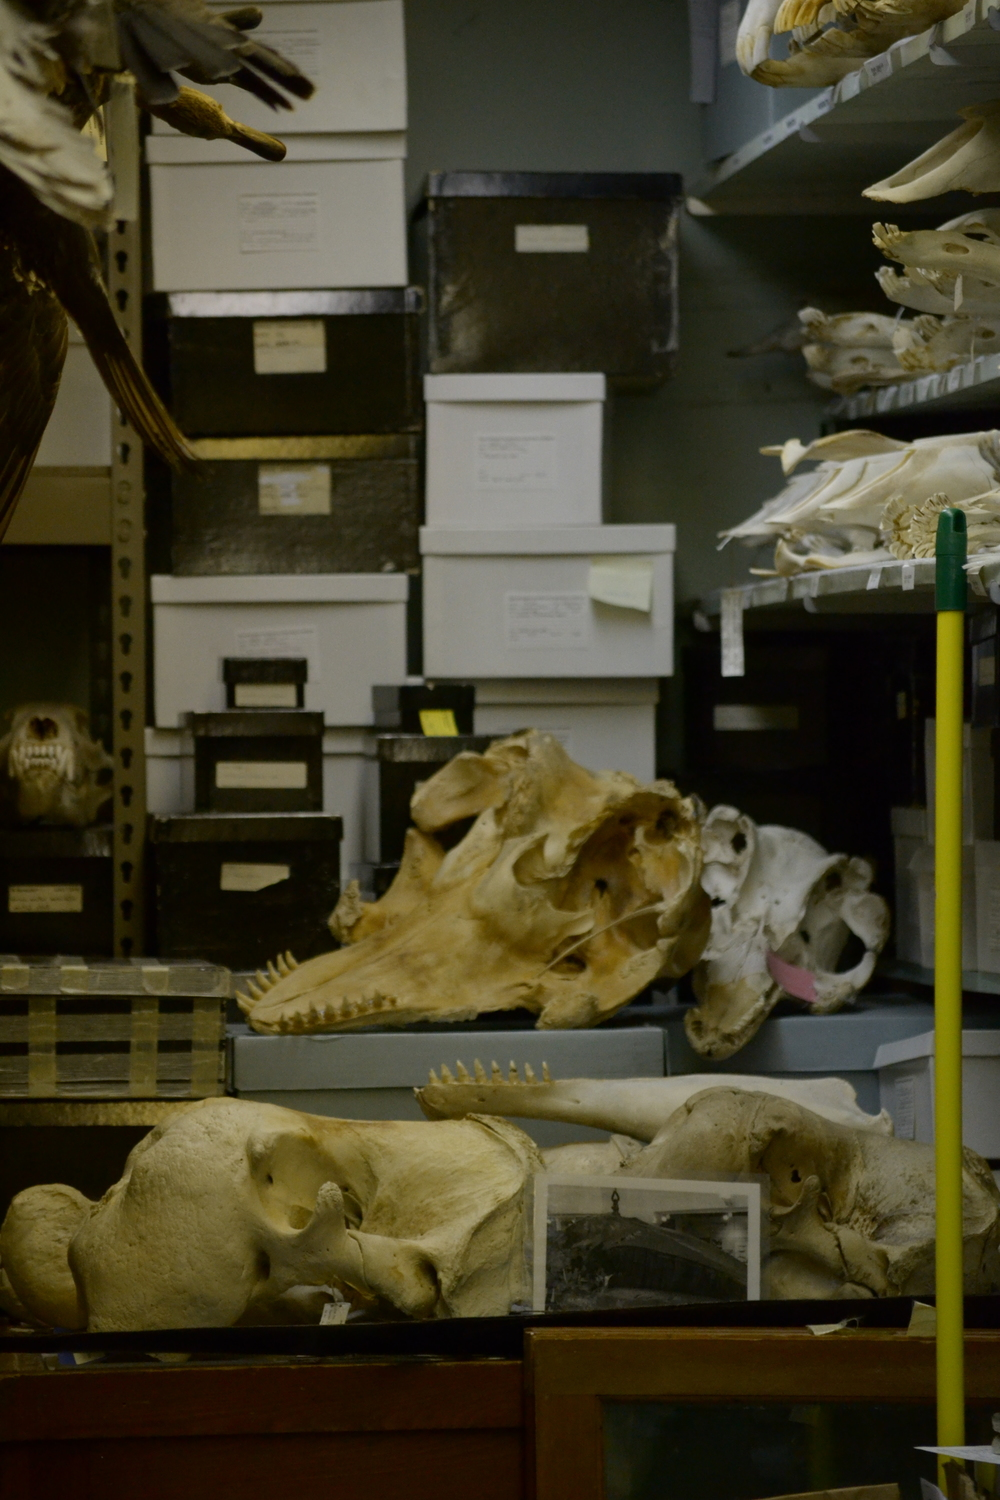 Shelves and cabinets from the UMZM. Pilot whale and walrus skulls in the foreground.